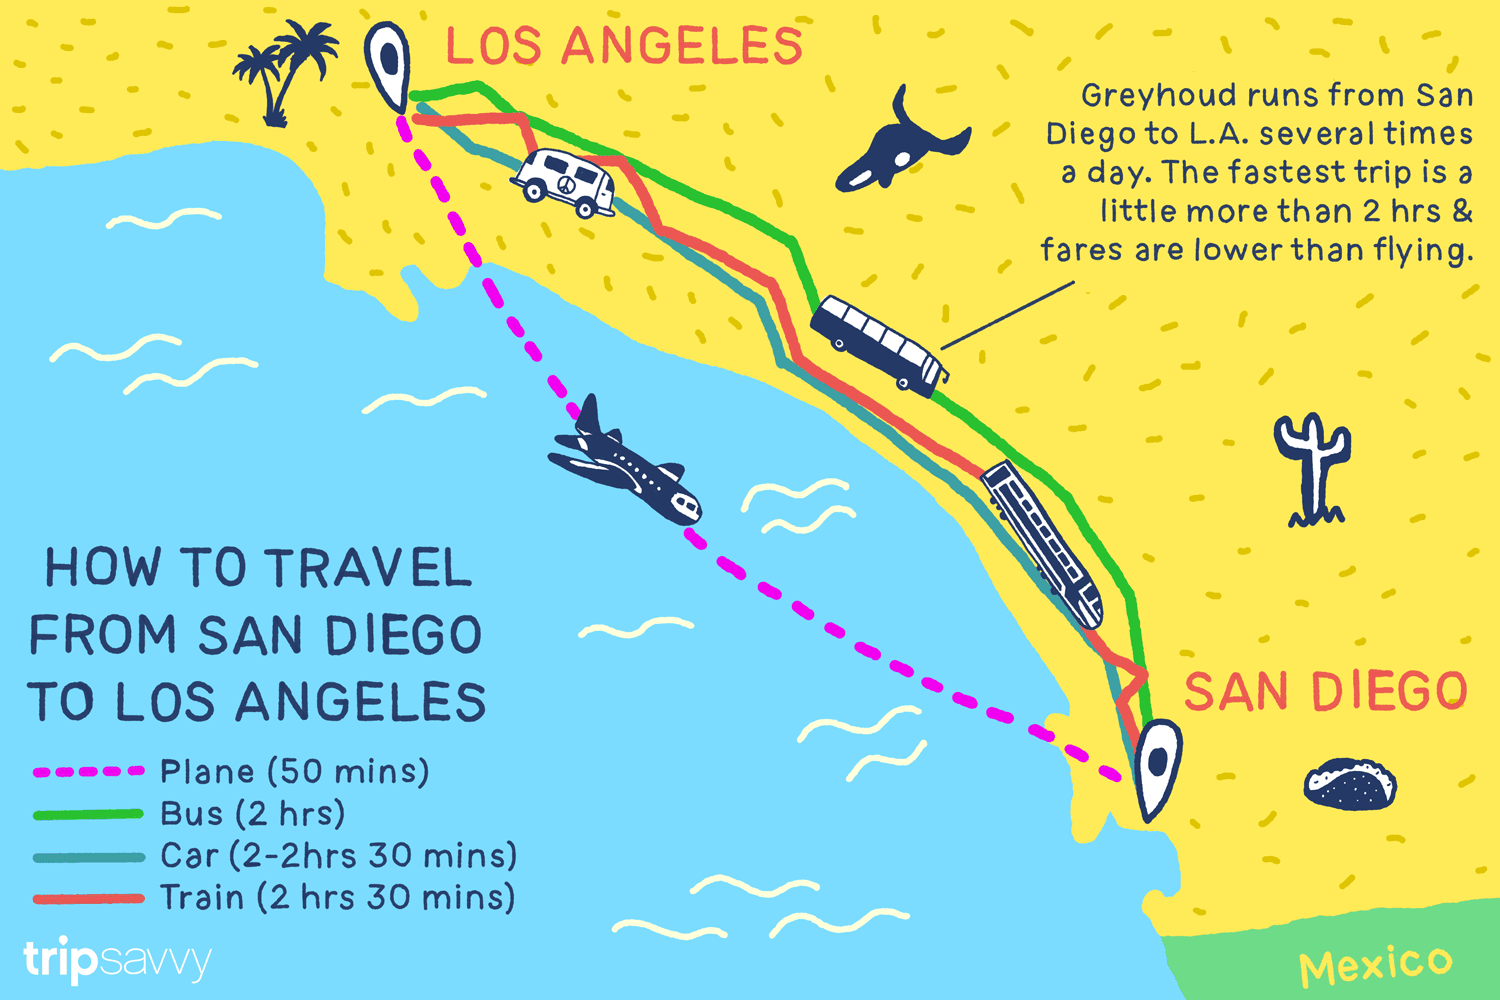 Illustration of routes between San Diego and LA